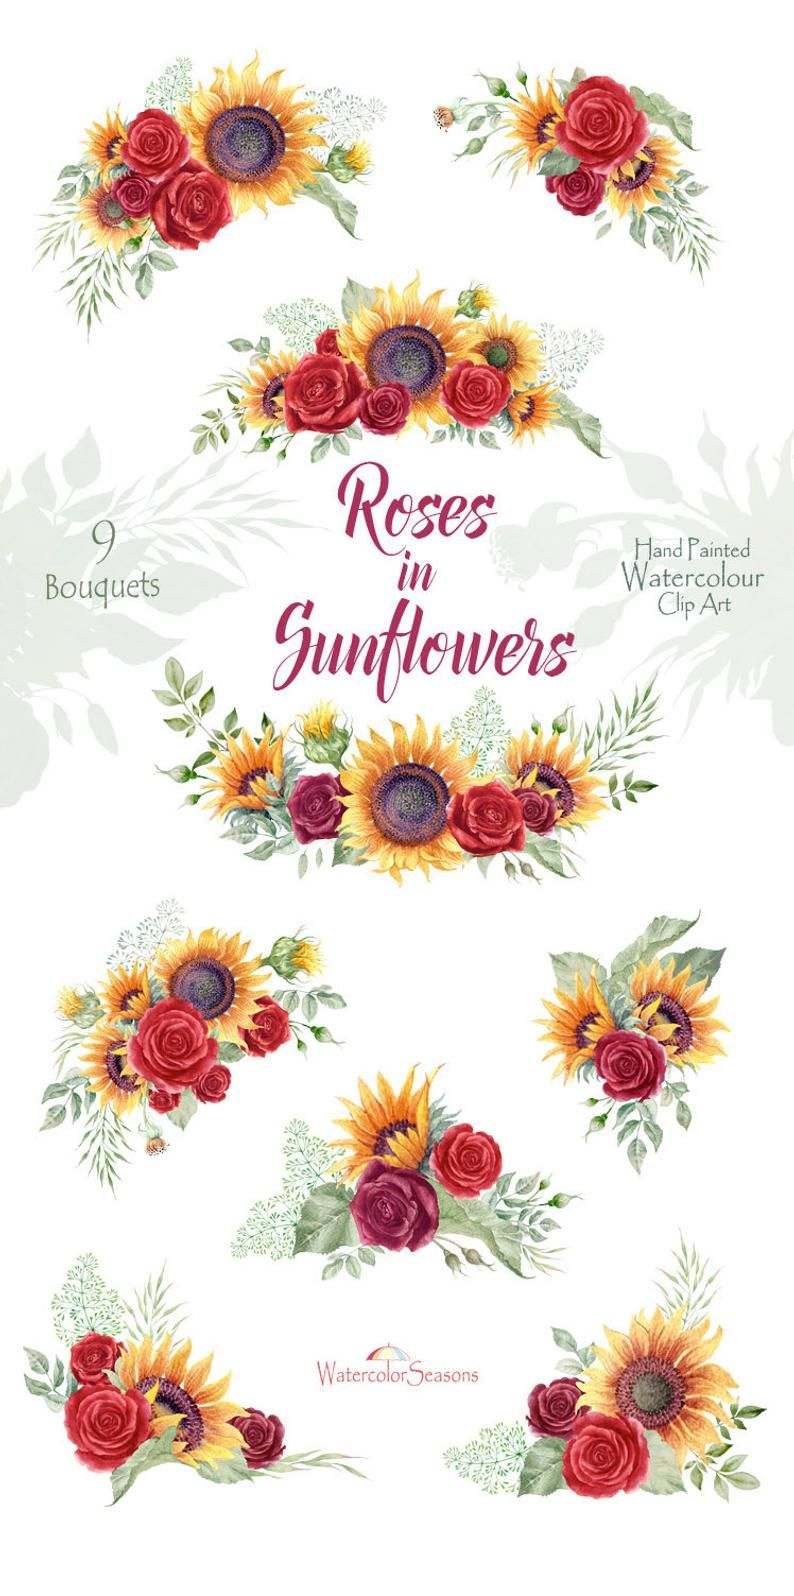 Roses In Sunflowers Watercolor Bouquets Autumn Clipart Red Etsy In 2020 Watercolor Sunflower Flower Crown Drawing Watercolor Bouquet